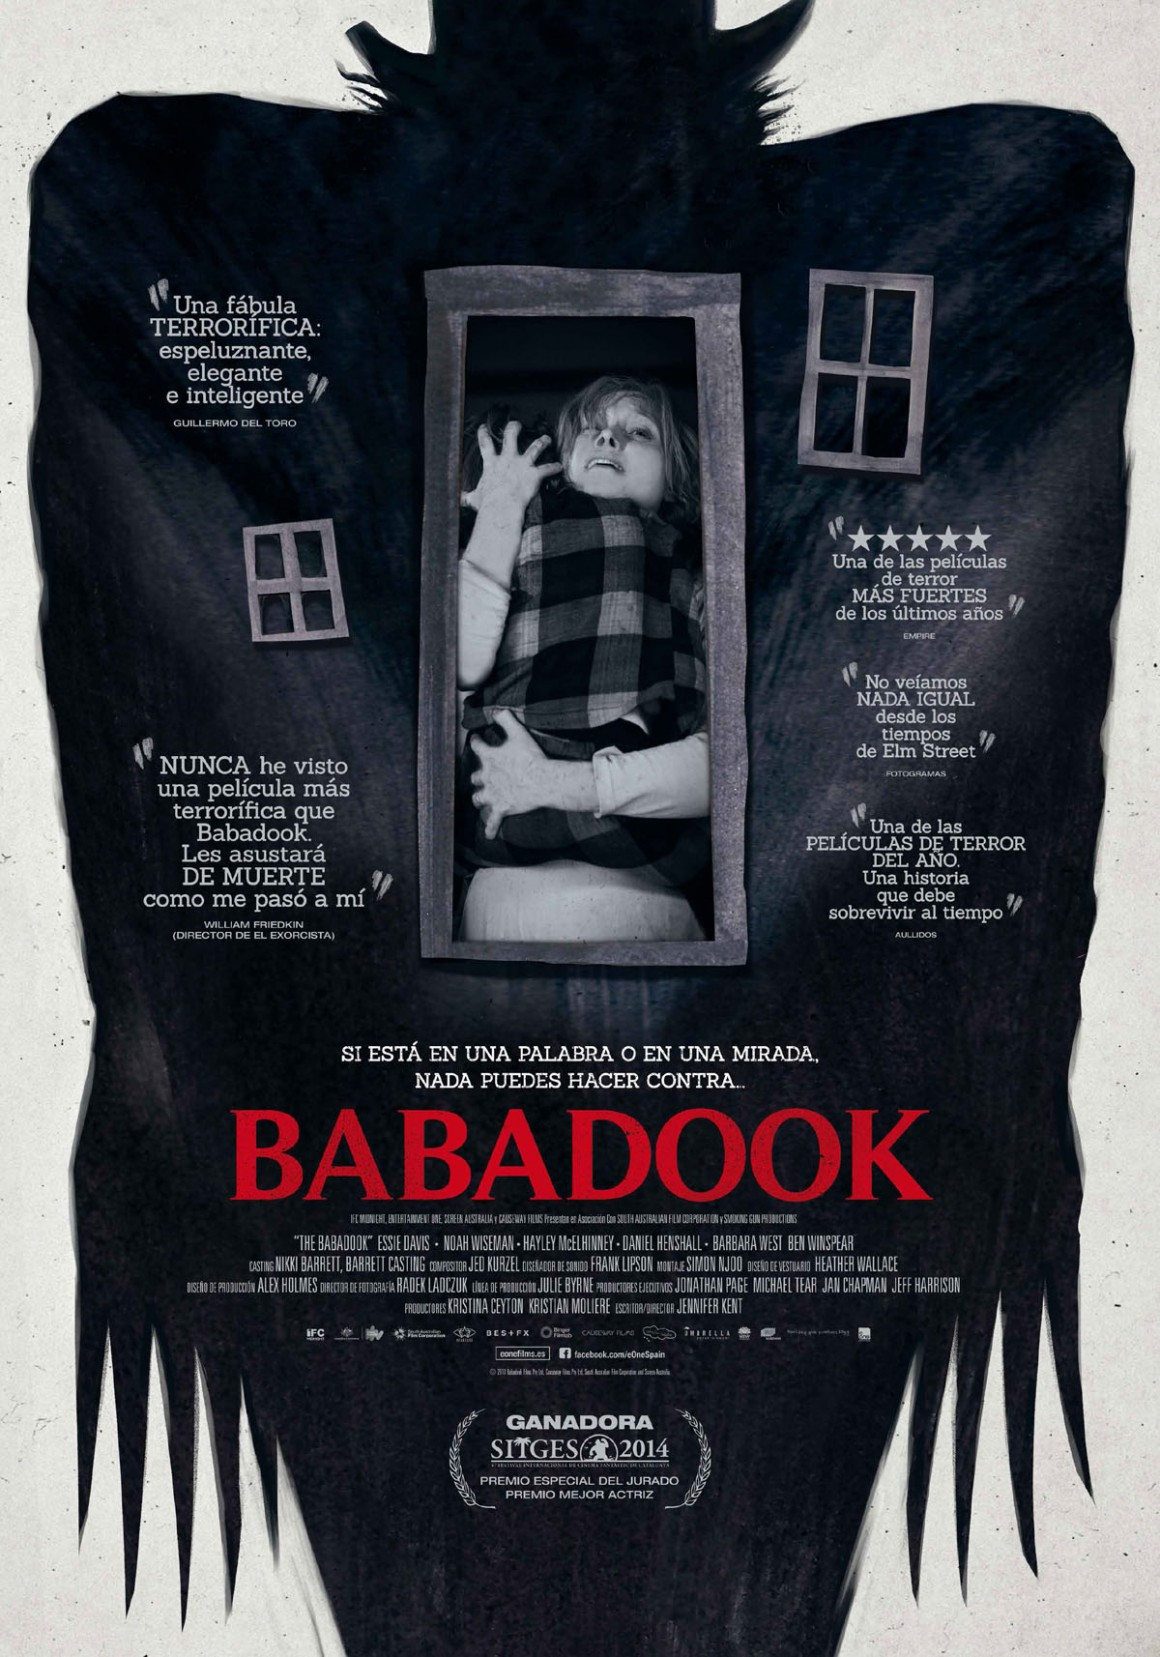 vo_babadook_poster